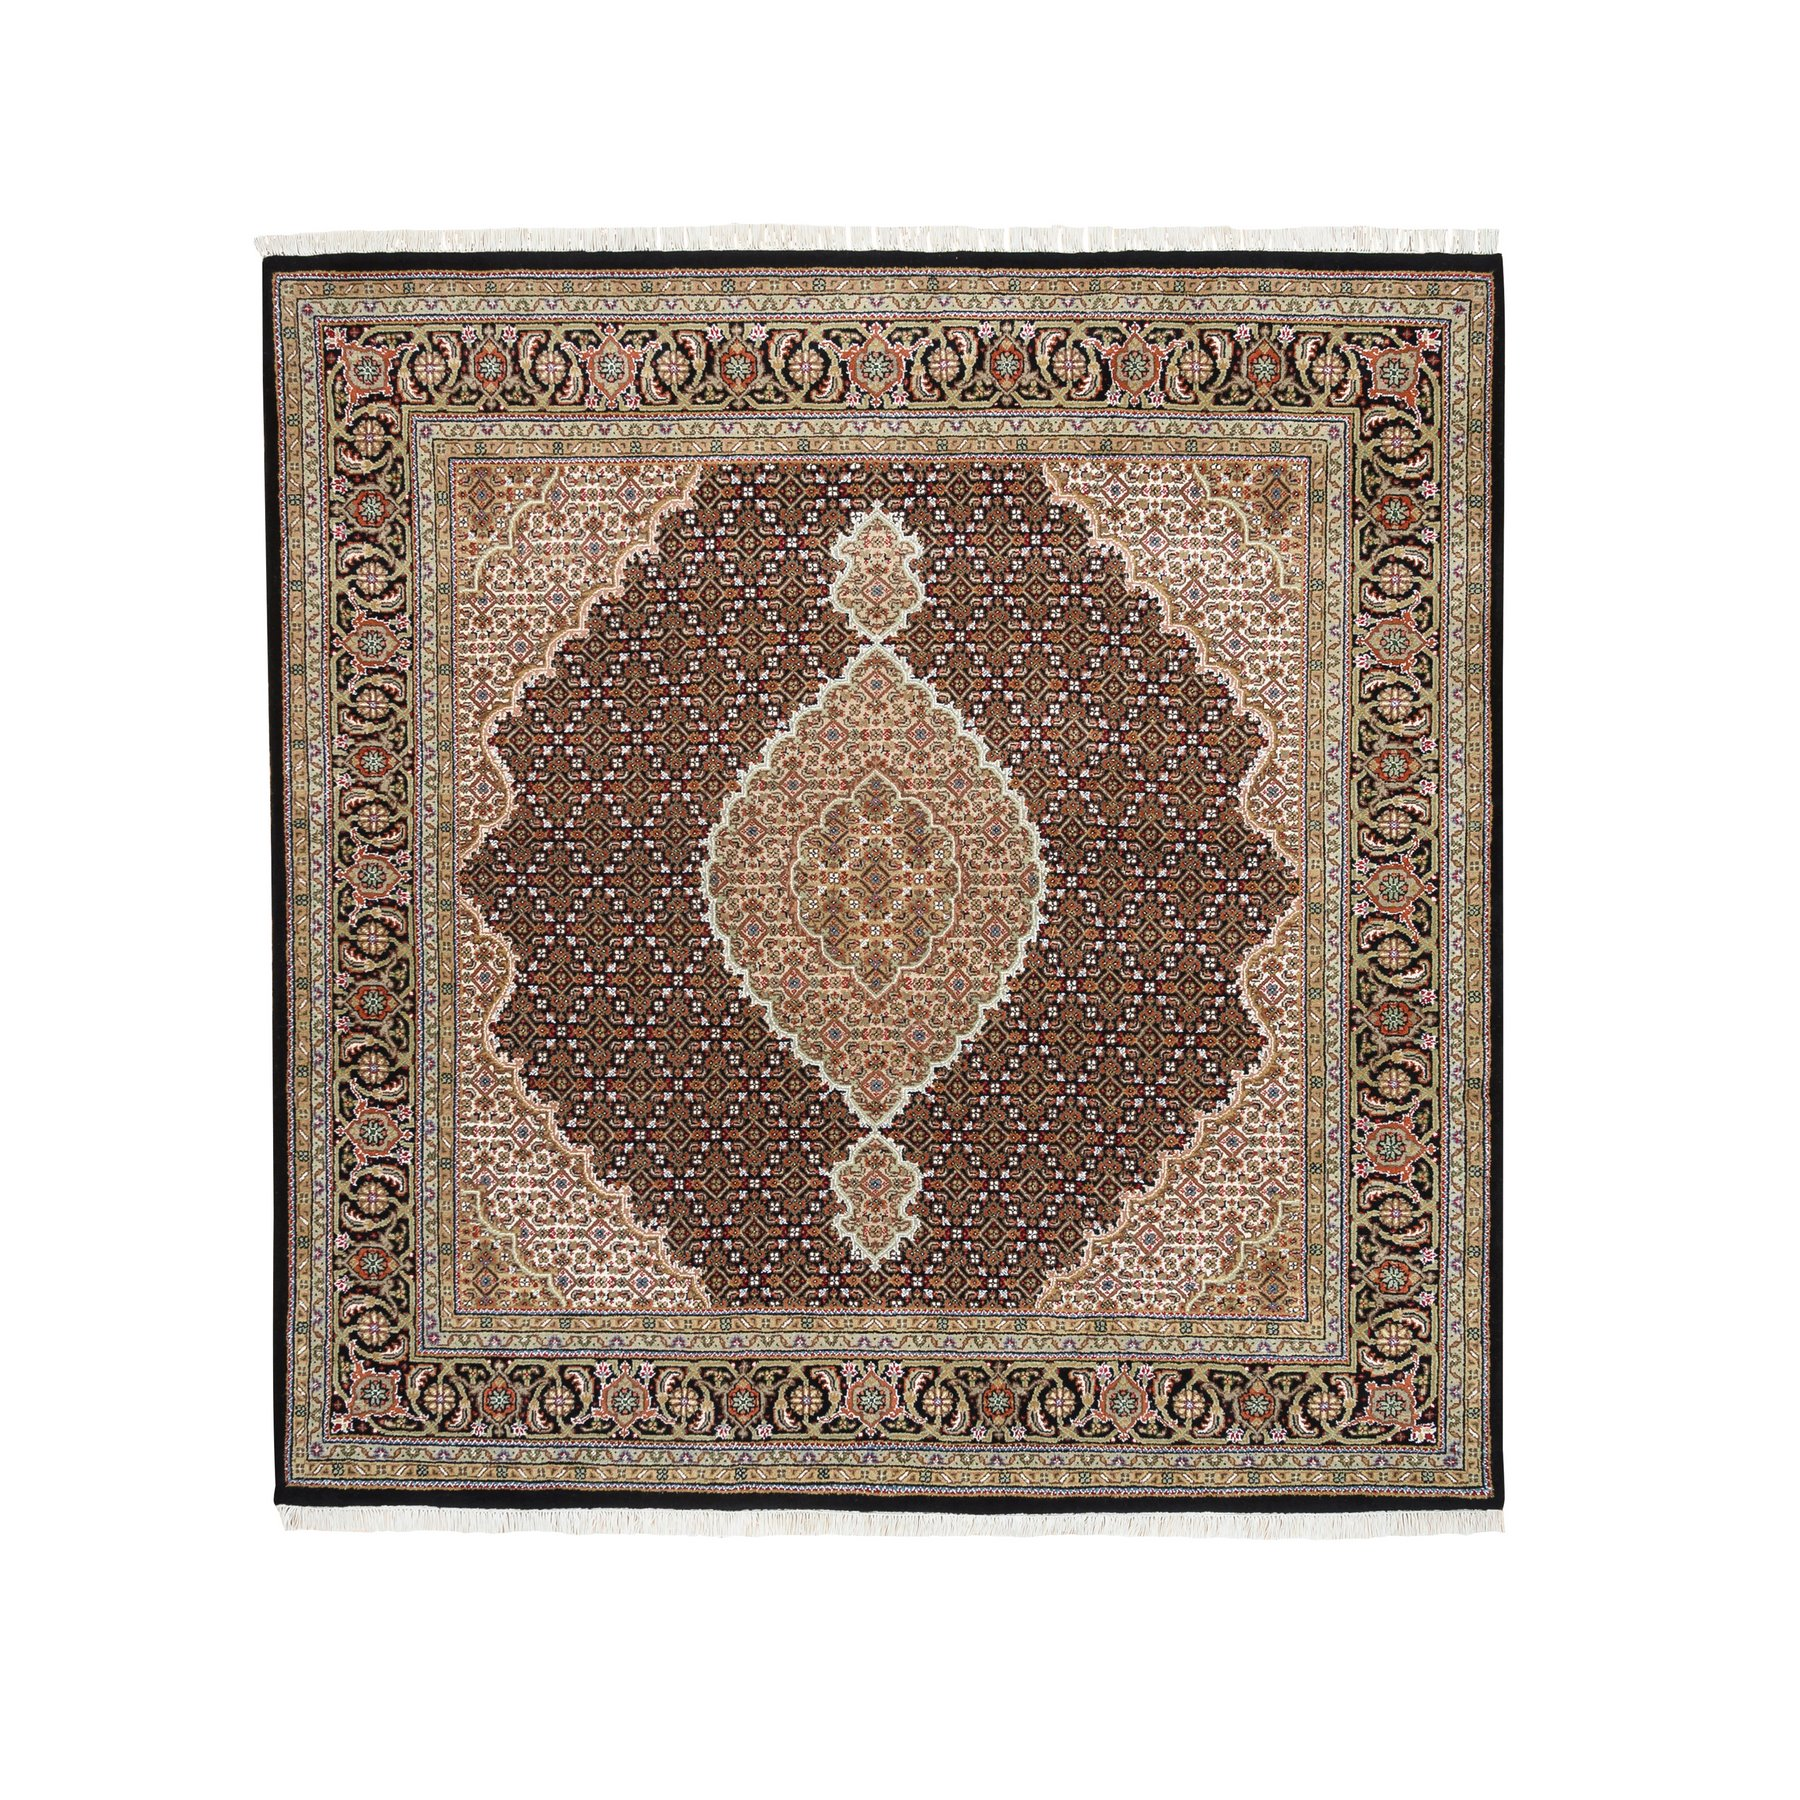 Pirniakan Collection Hand Knotted Black Rug No: 1125228